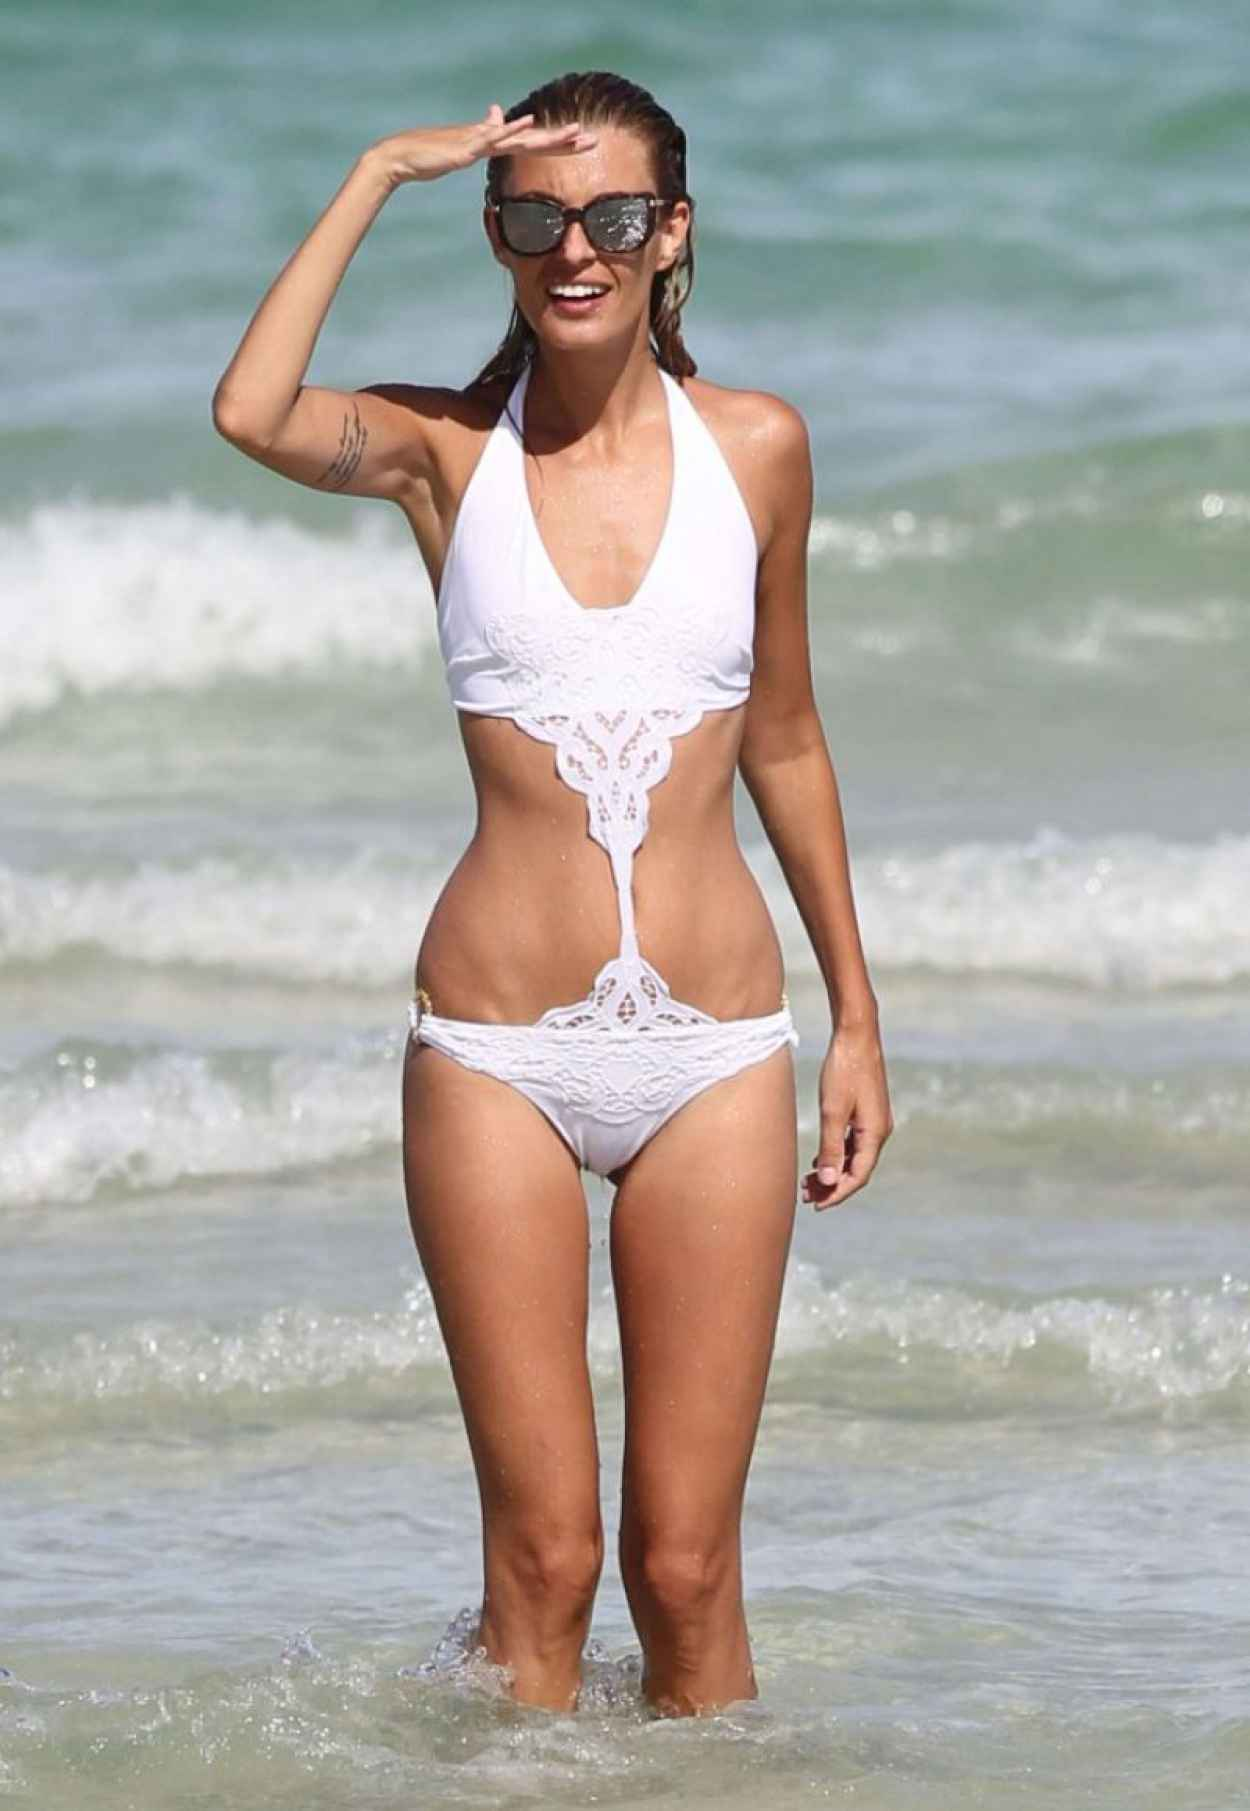 sveva alviti in a bikini on miami beach august 2015 celebsla